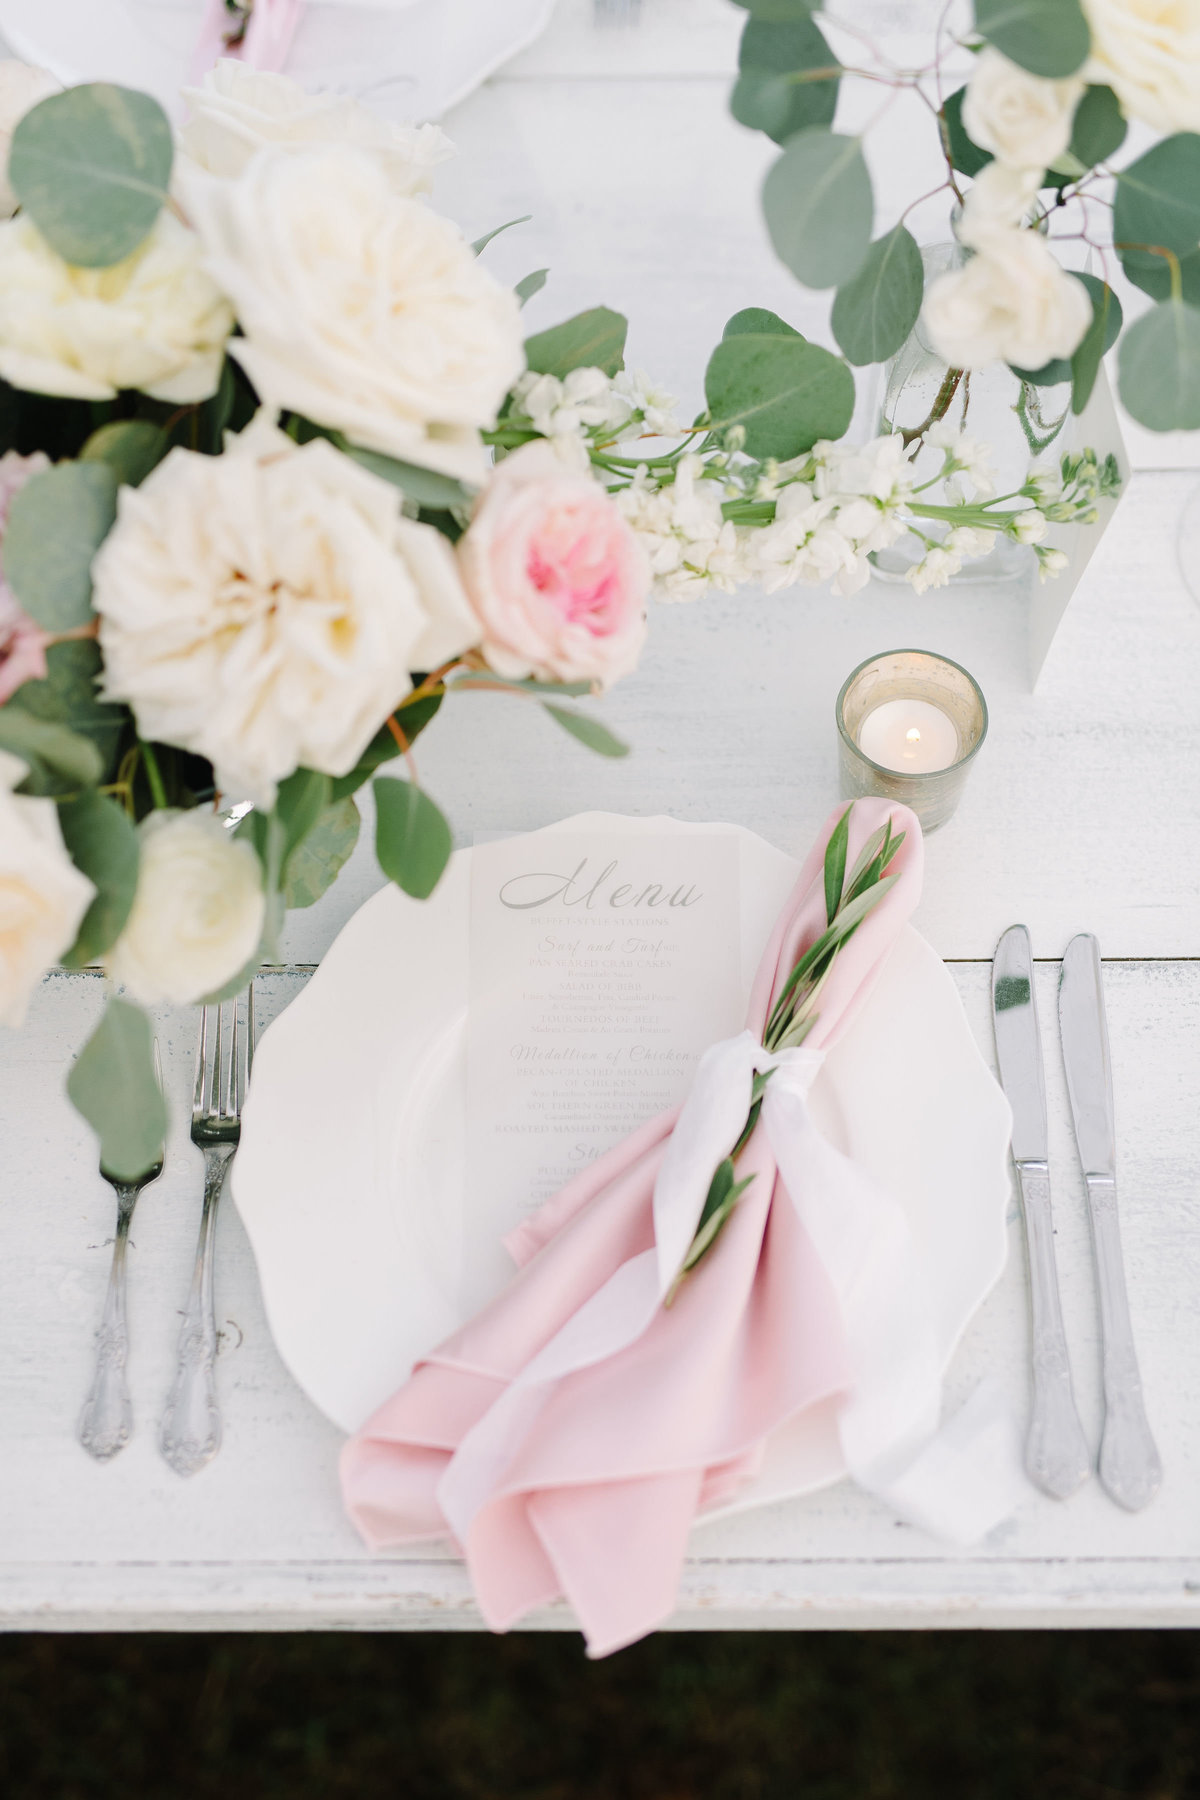 Blush Pink Napkin Fold tied with Ribbon and Sprig of greenery on White Farm Table with Silverware Place Setting